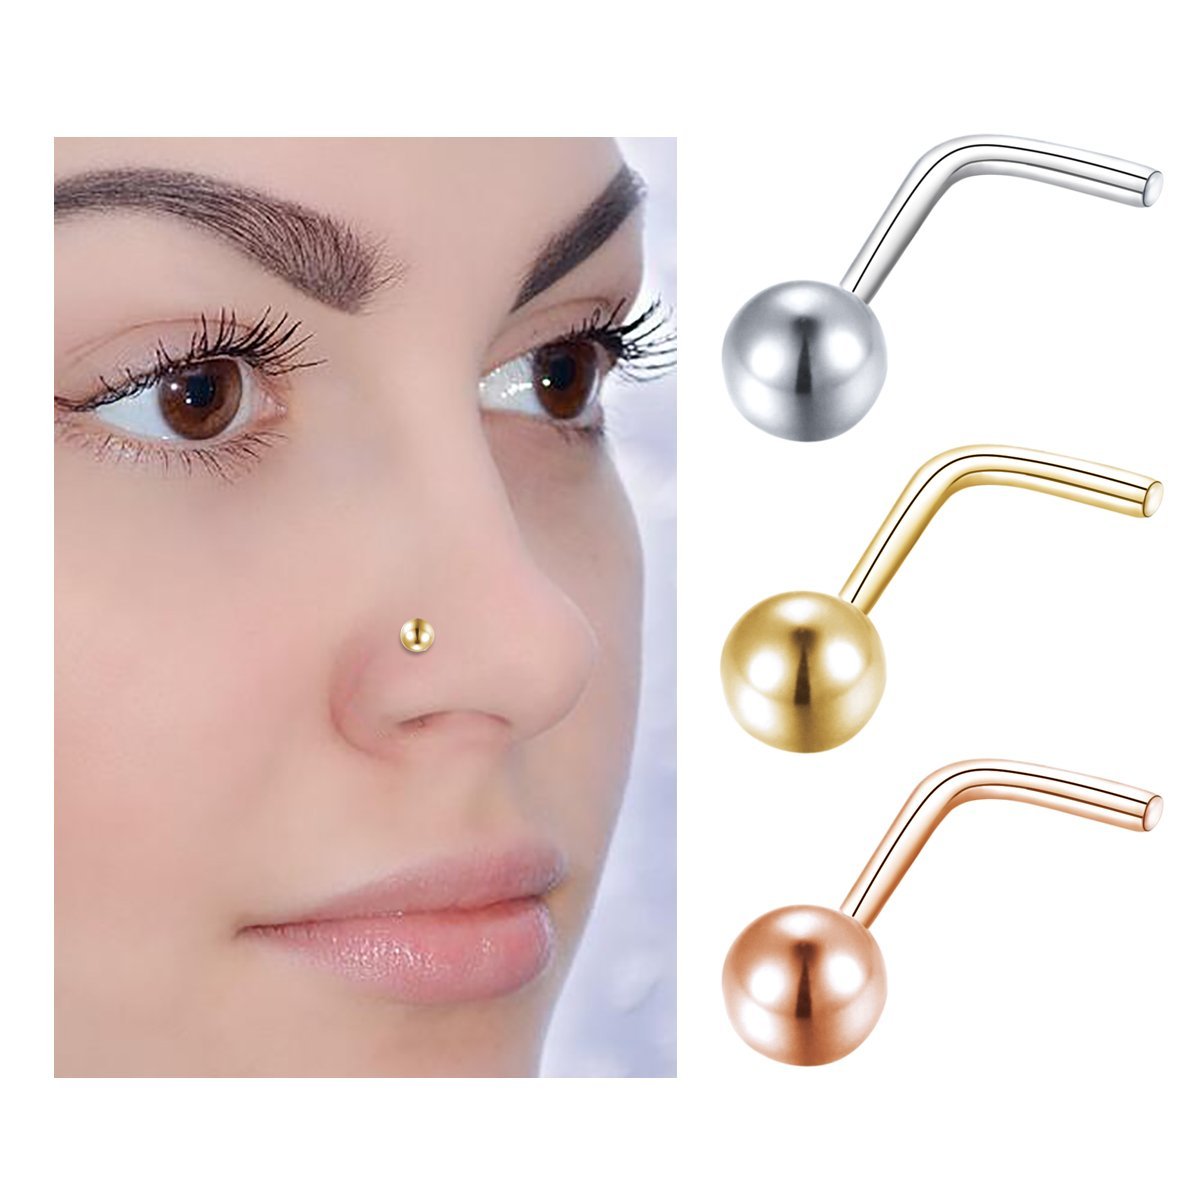 L Shape Nose Stud 20G Sterling Silver 3mm Ball Shape Nose Ring Piercing Body Jewelry (0.8mm)